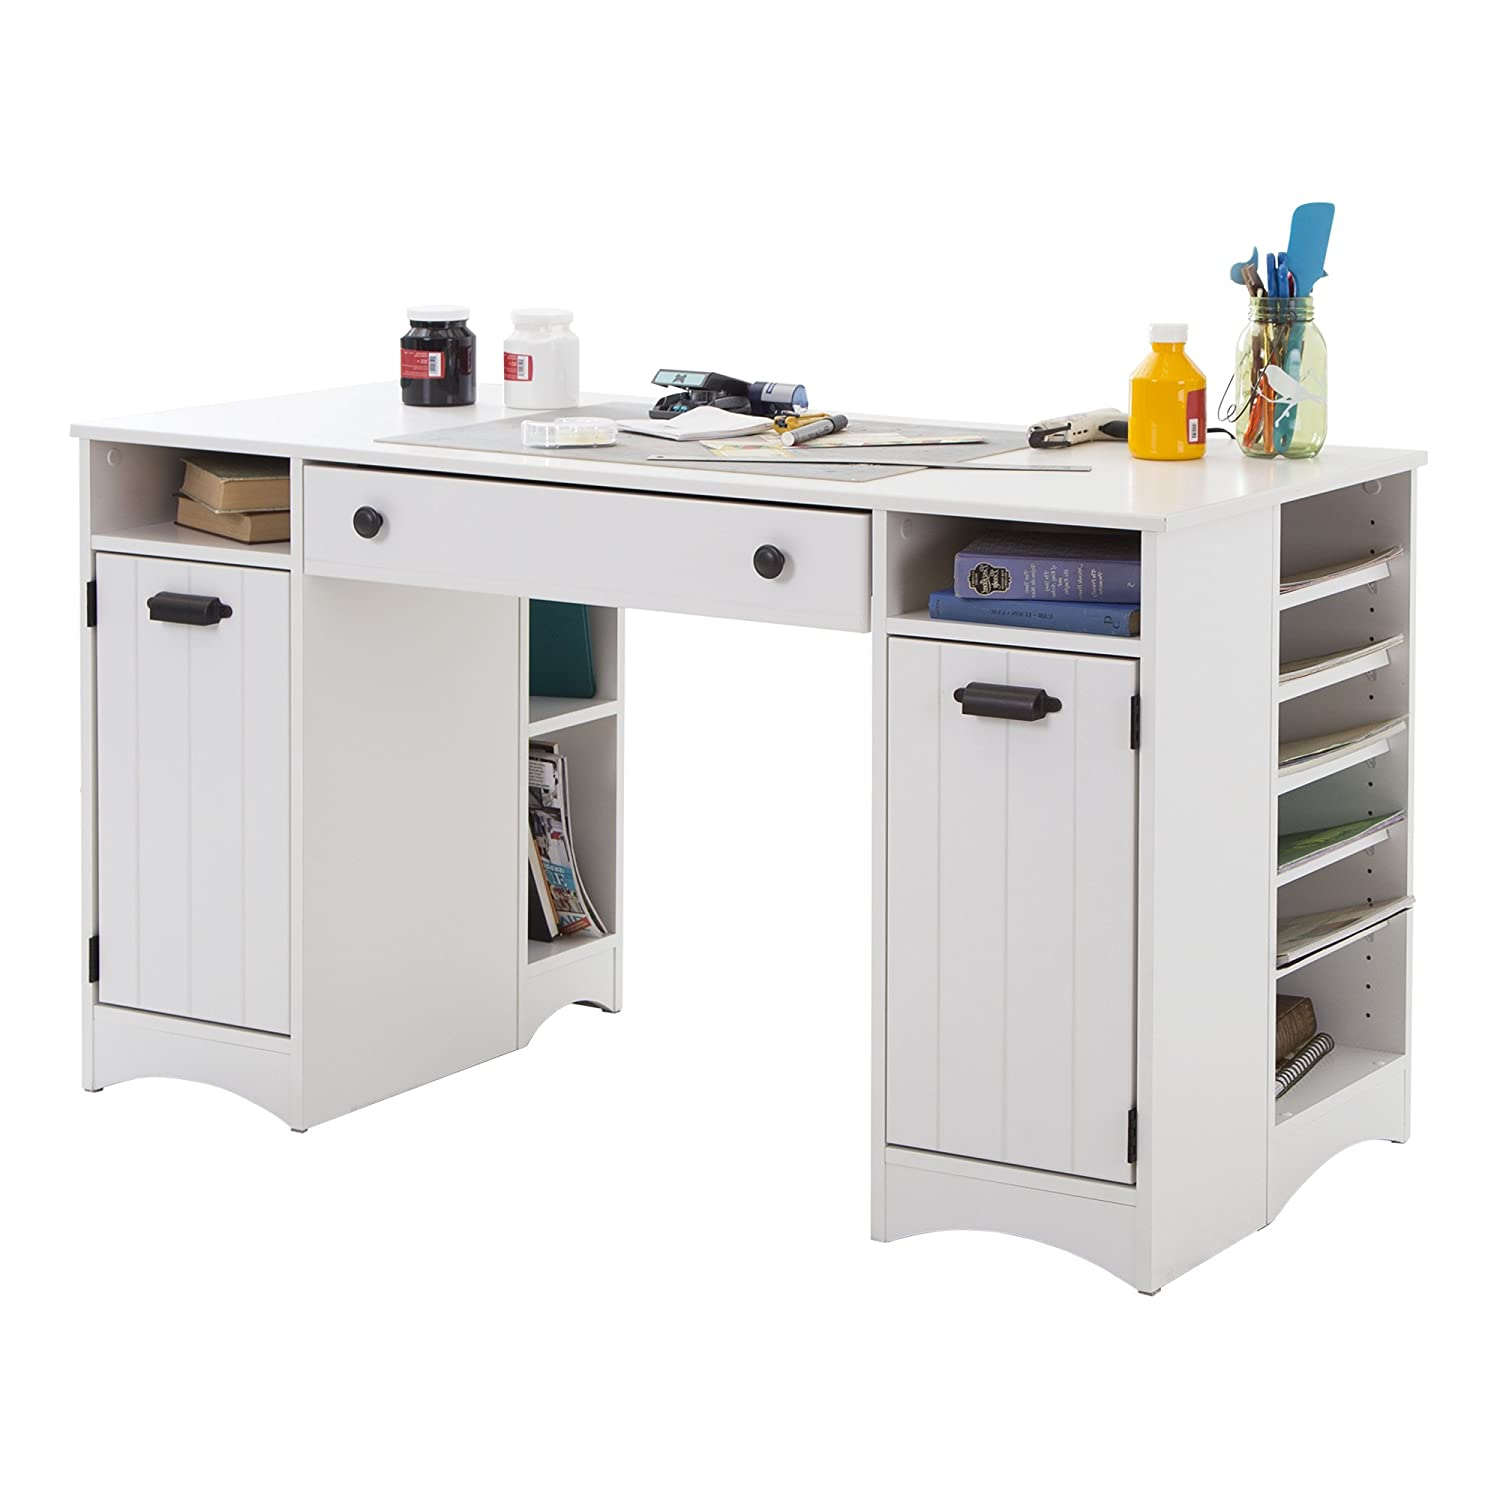 Amazon.com: Artwork Craft Table With Storage   Large Work Surface    Multiple Storage Spaces   Pure White By South Shore: Arts, Crafts U0026 Sewing